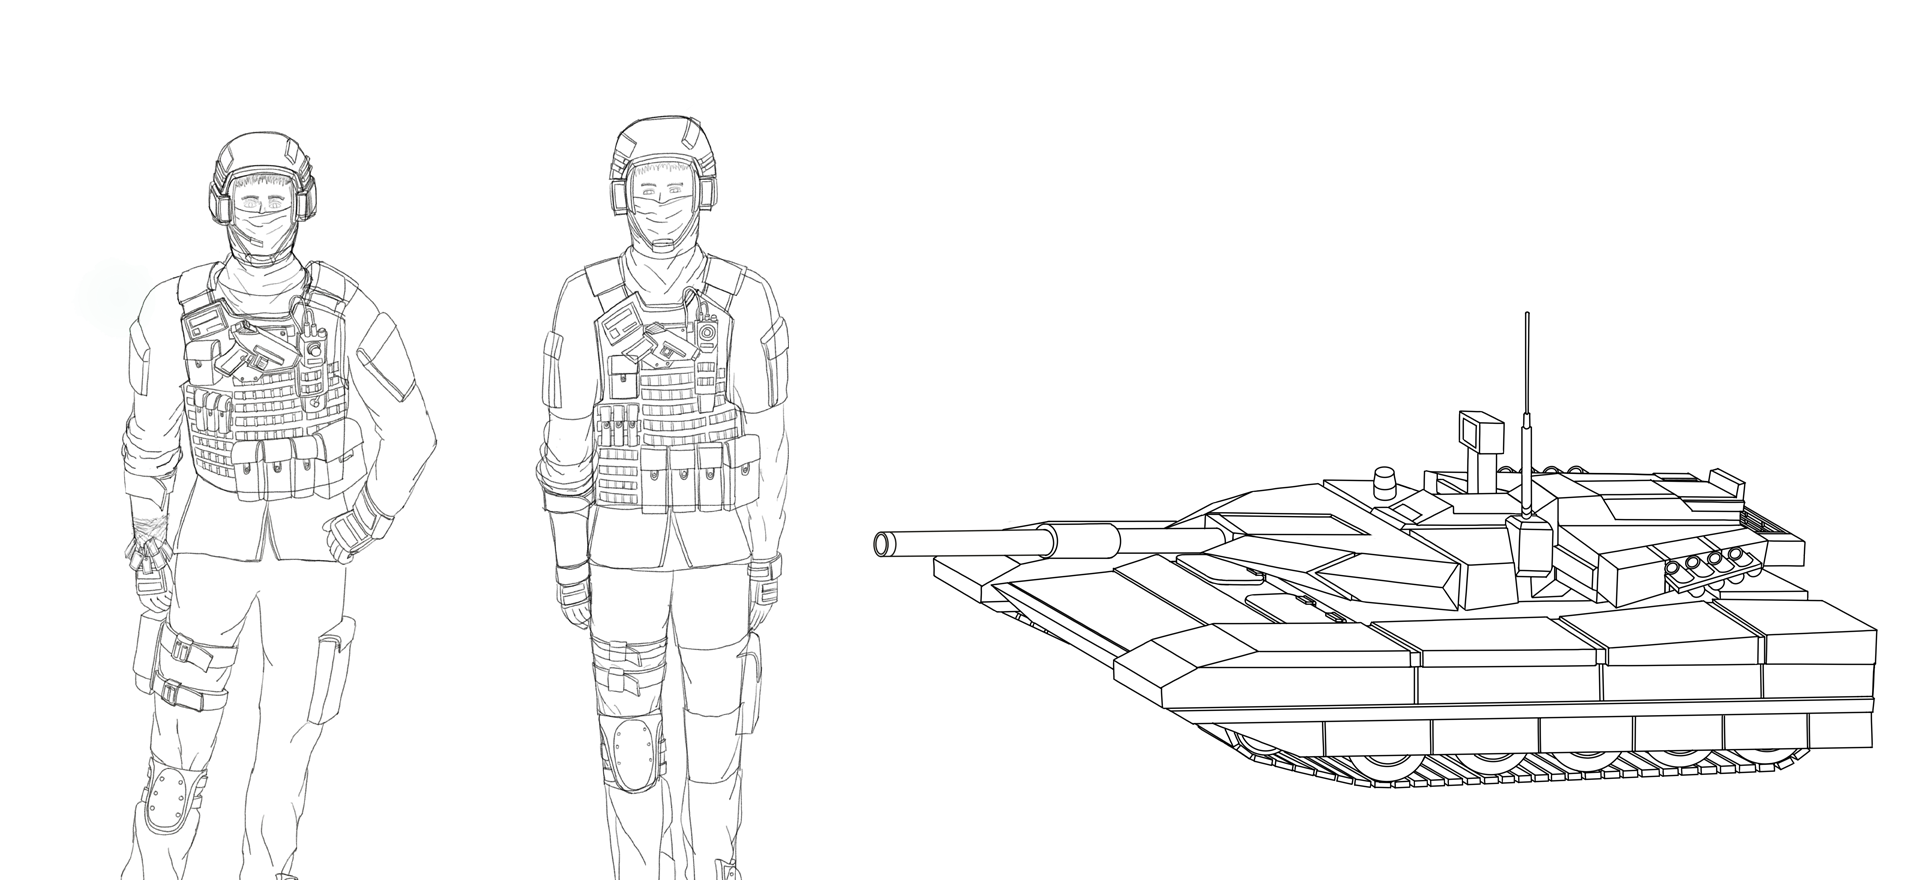 Tank crew and Type 22 Tank - Personal art project